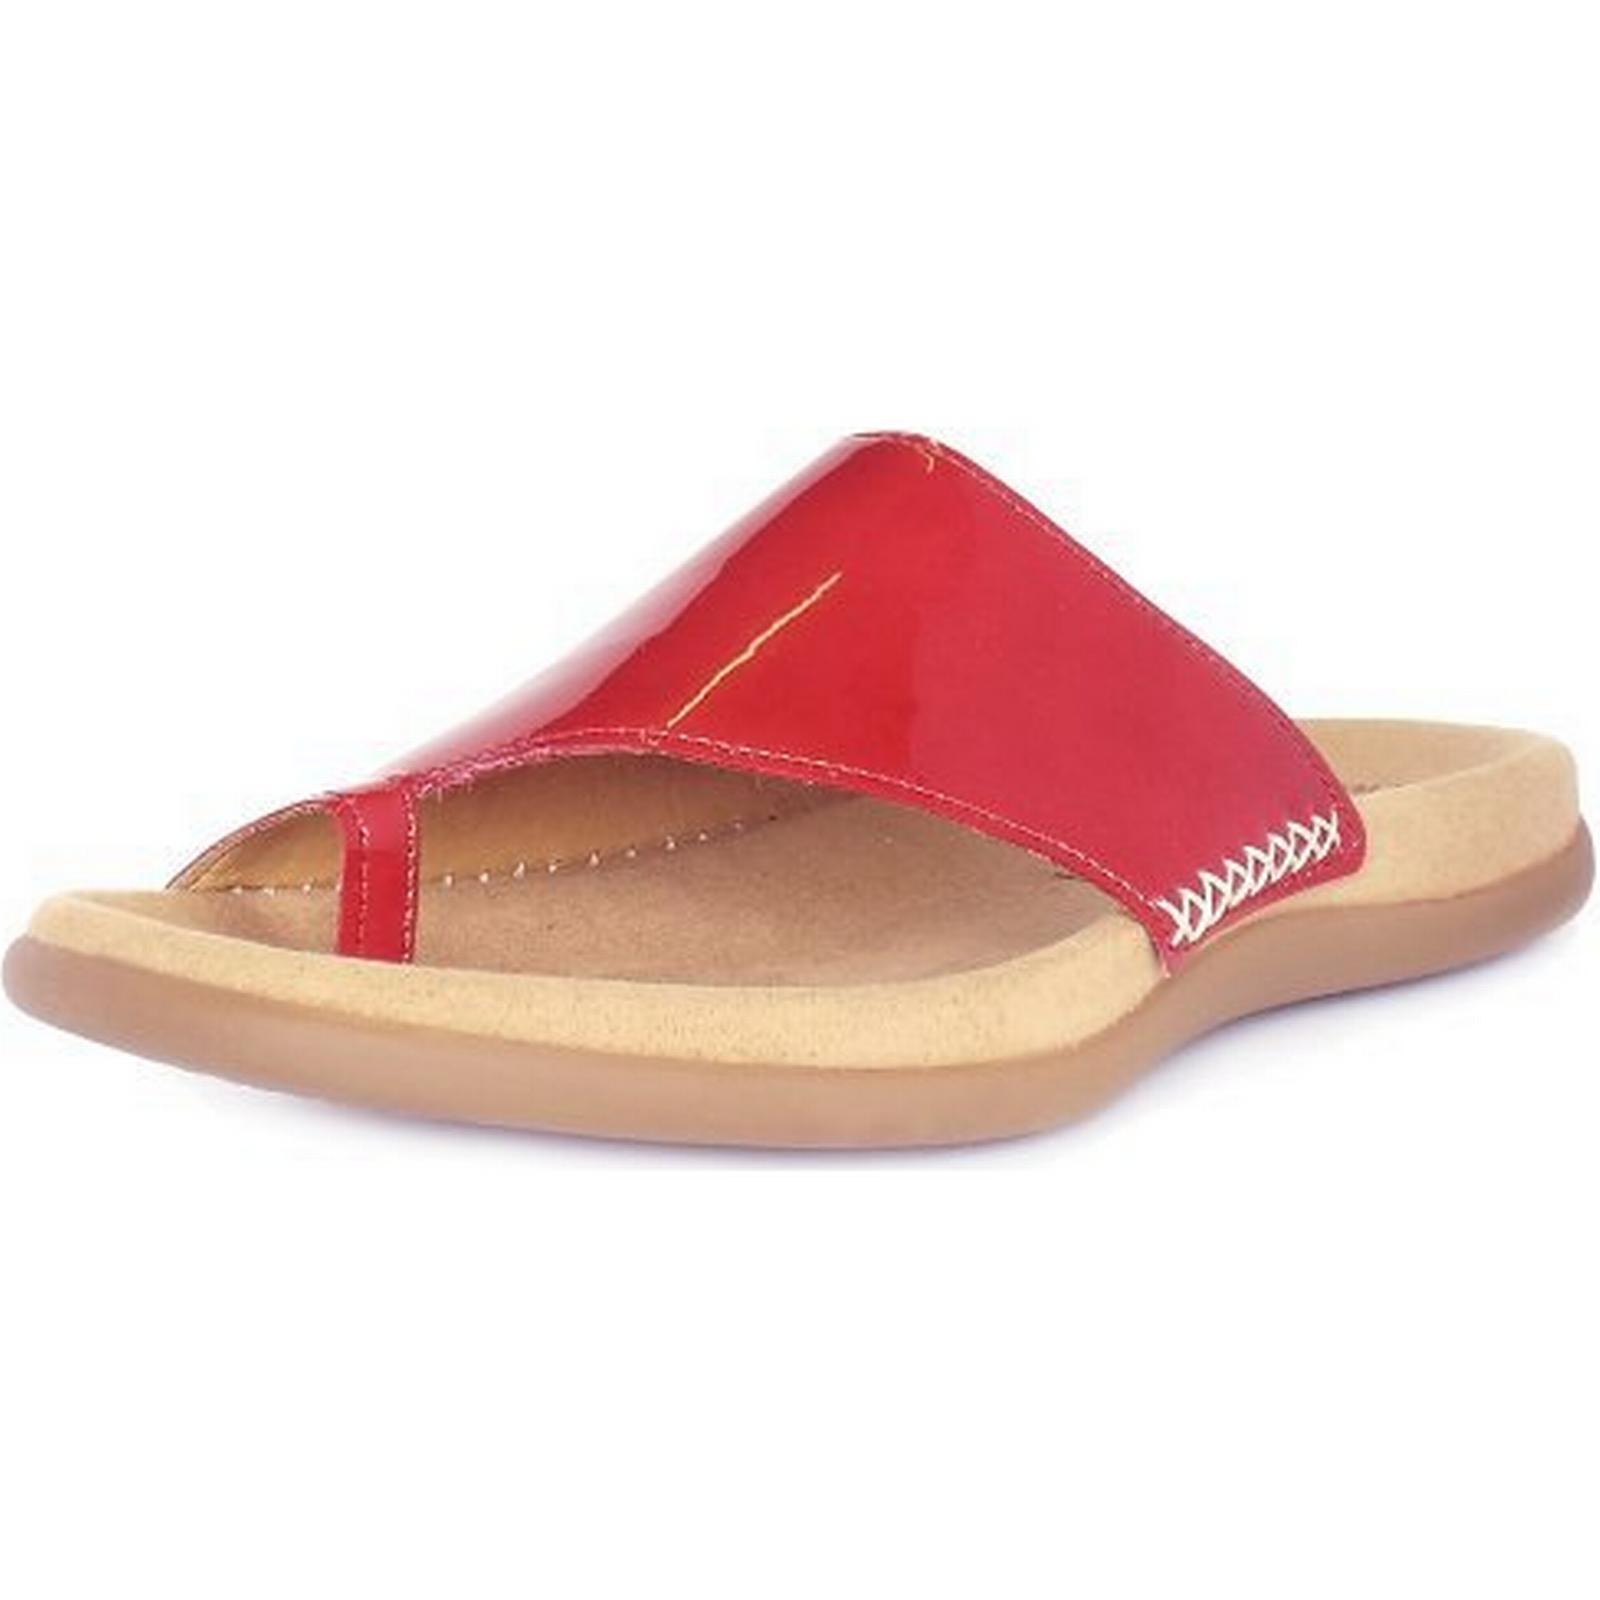 gabor lanzarote gabor mesdames sandales, taille: 36 36 36 brevets couleur: rouge dd9a23